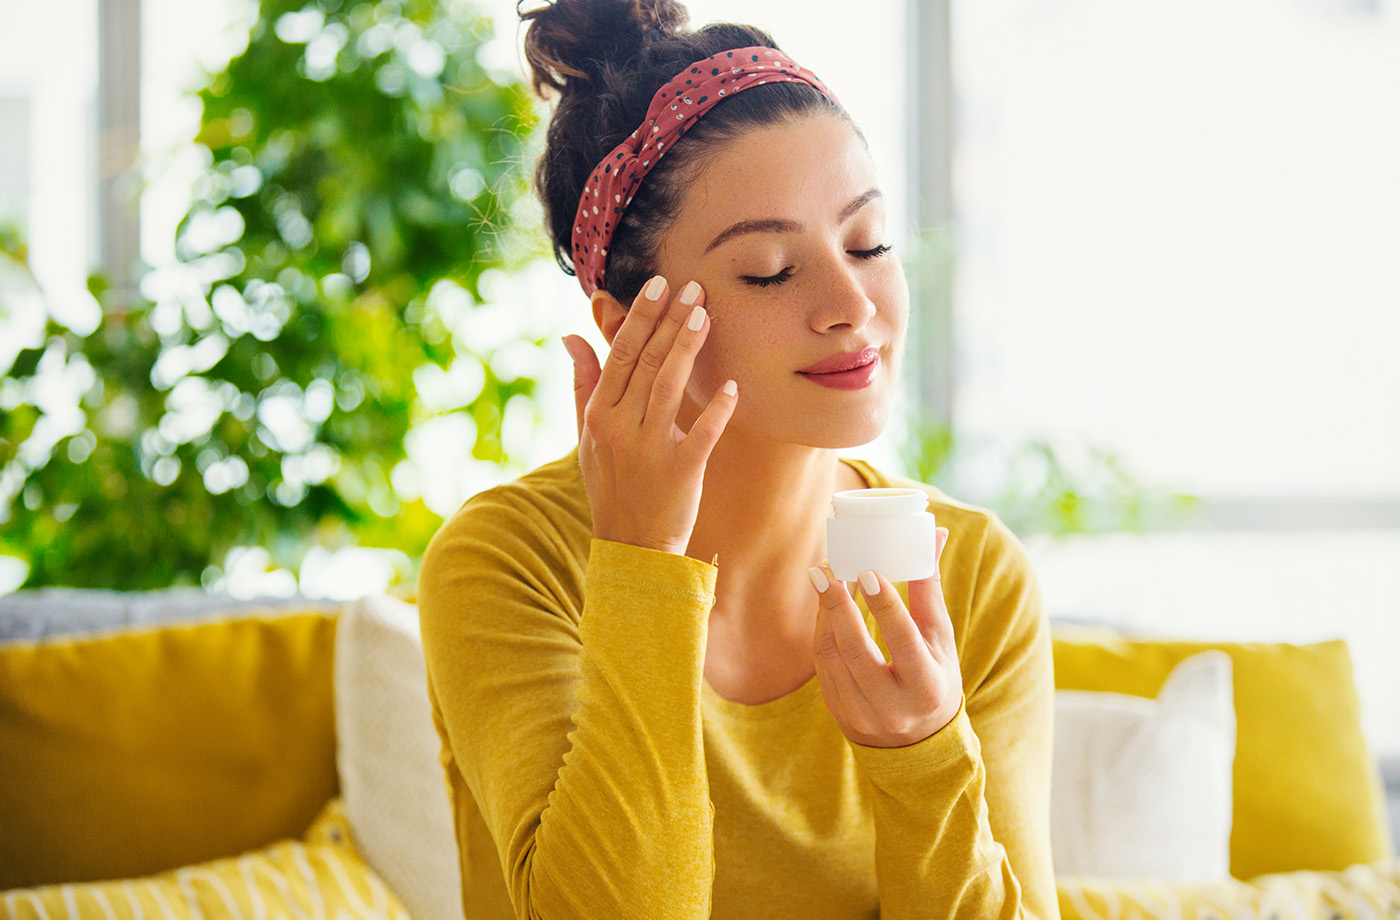 Thumbnail for These Turmeric Skin-Care Products Are My Anti-inflammatory Winter Skin Saviors